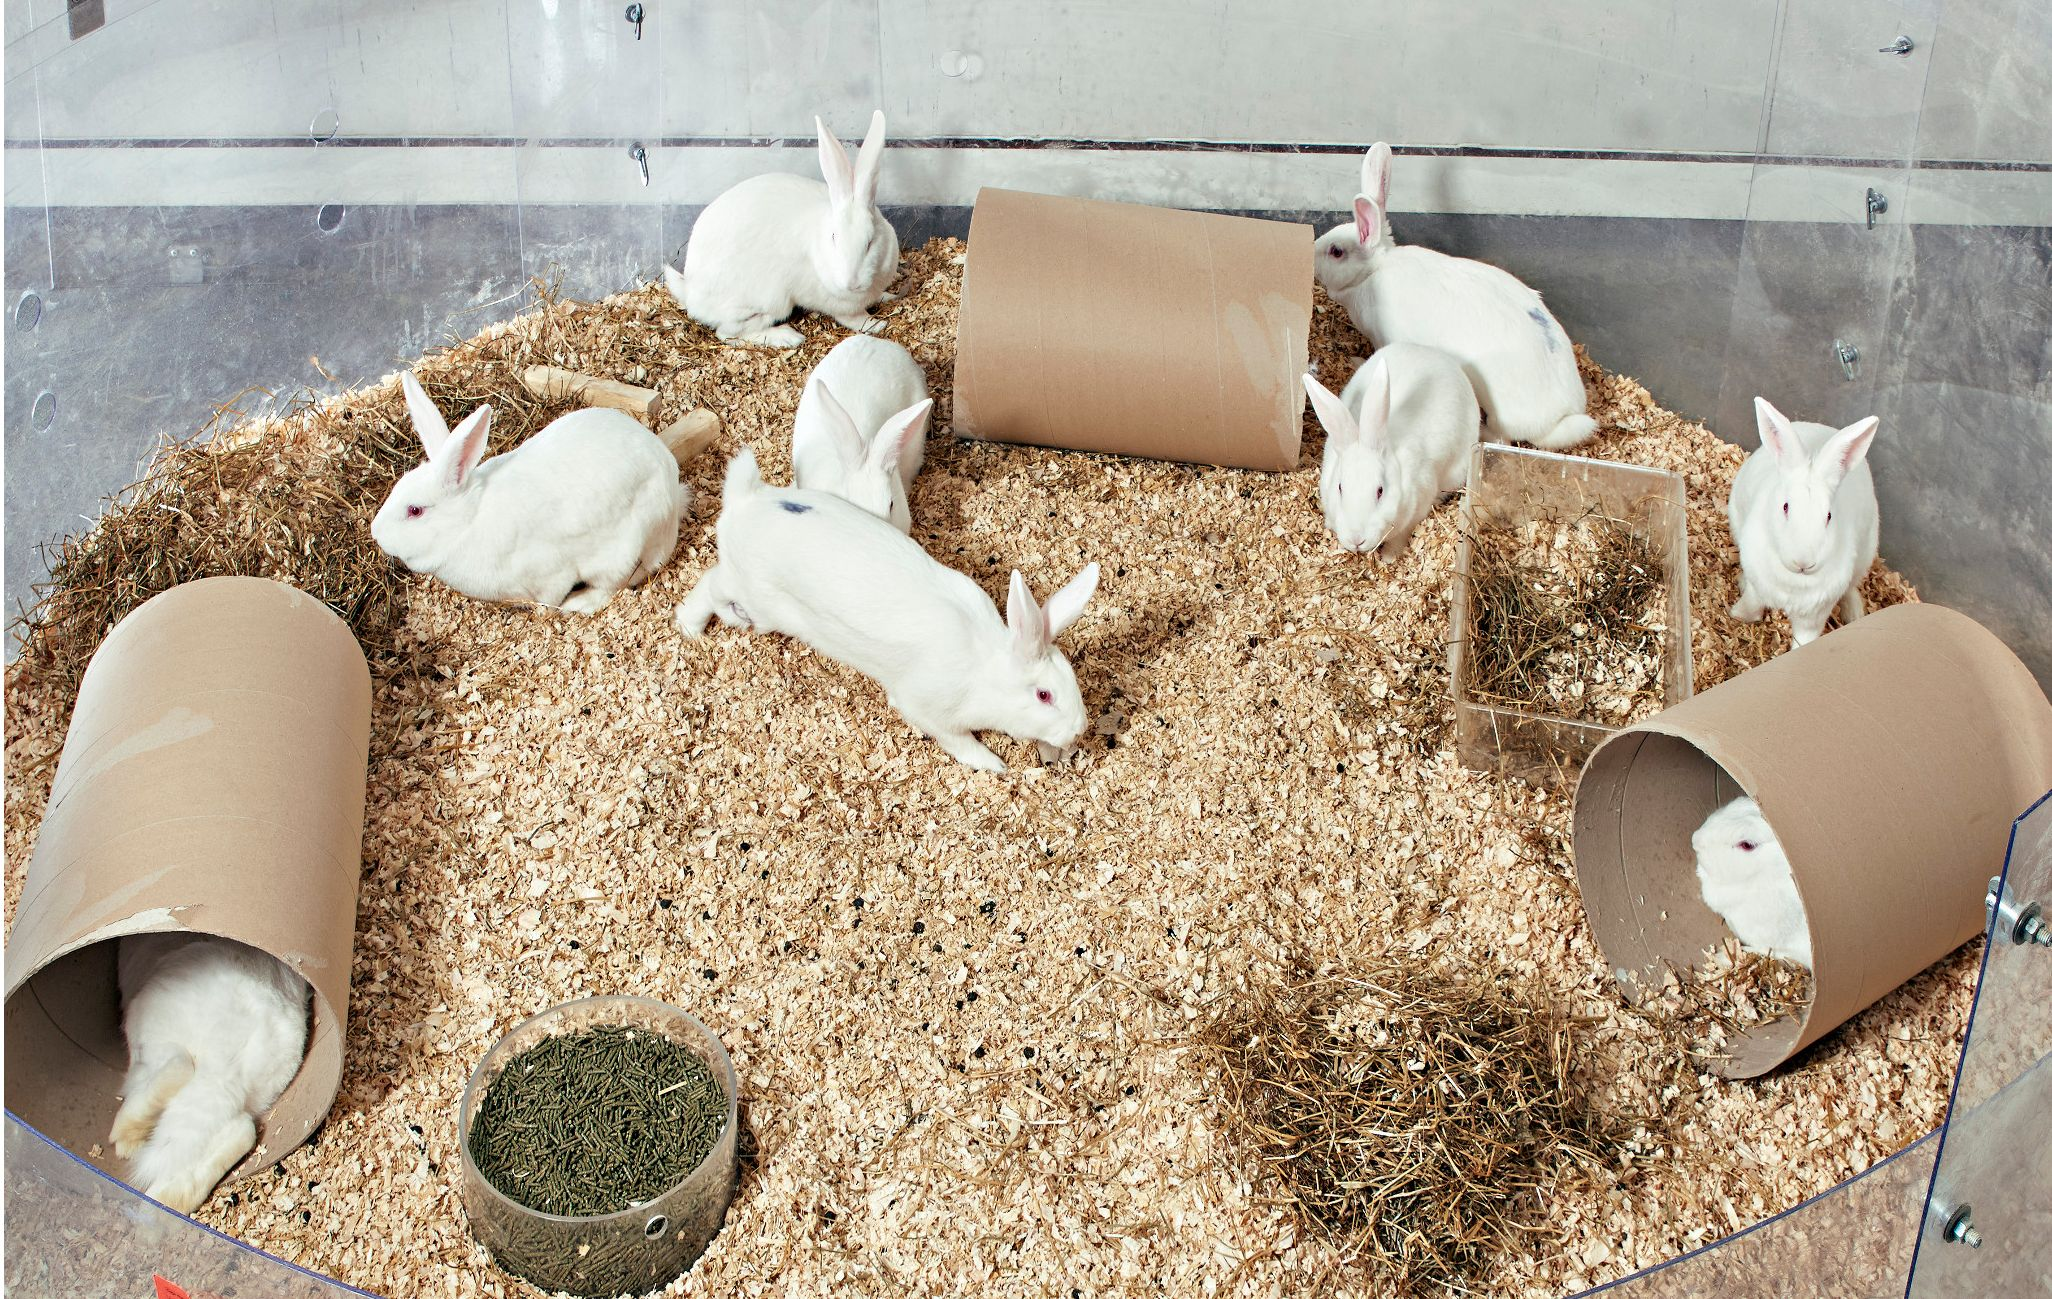 White rabbits in an enclosure